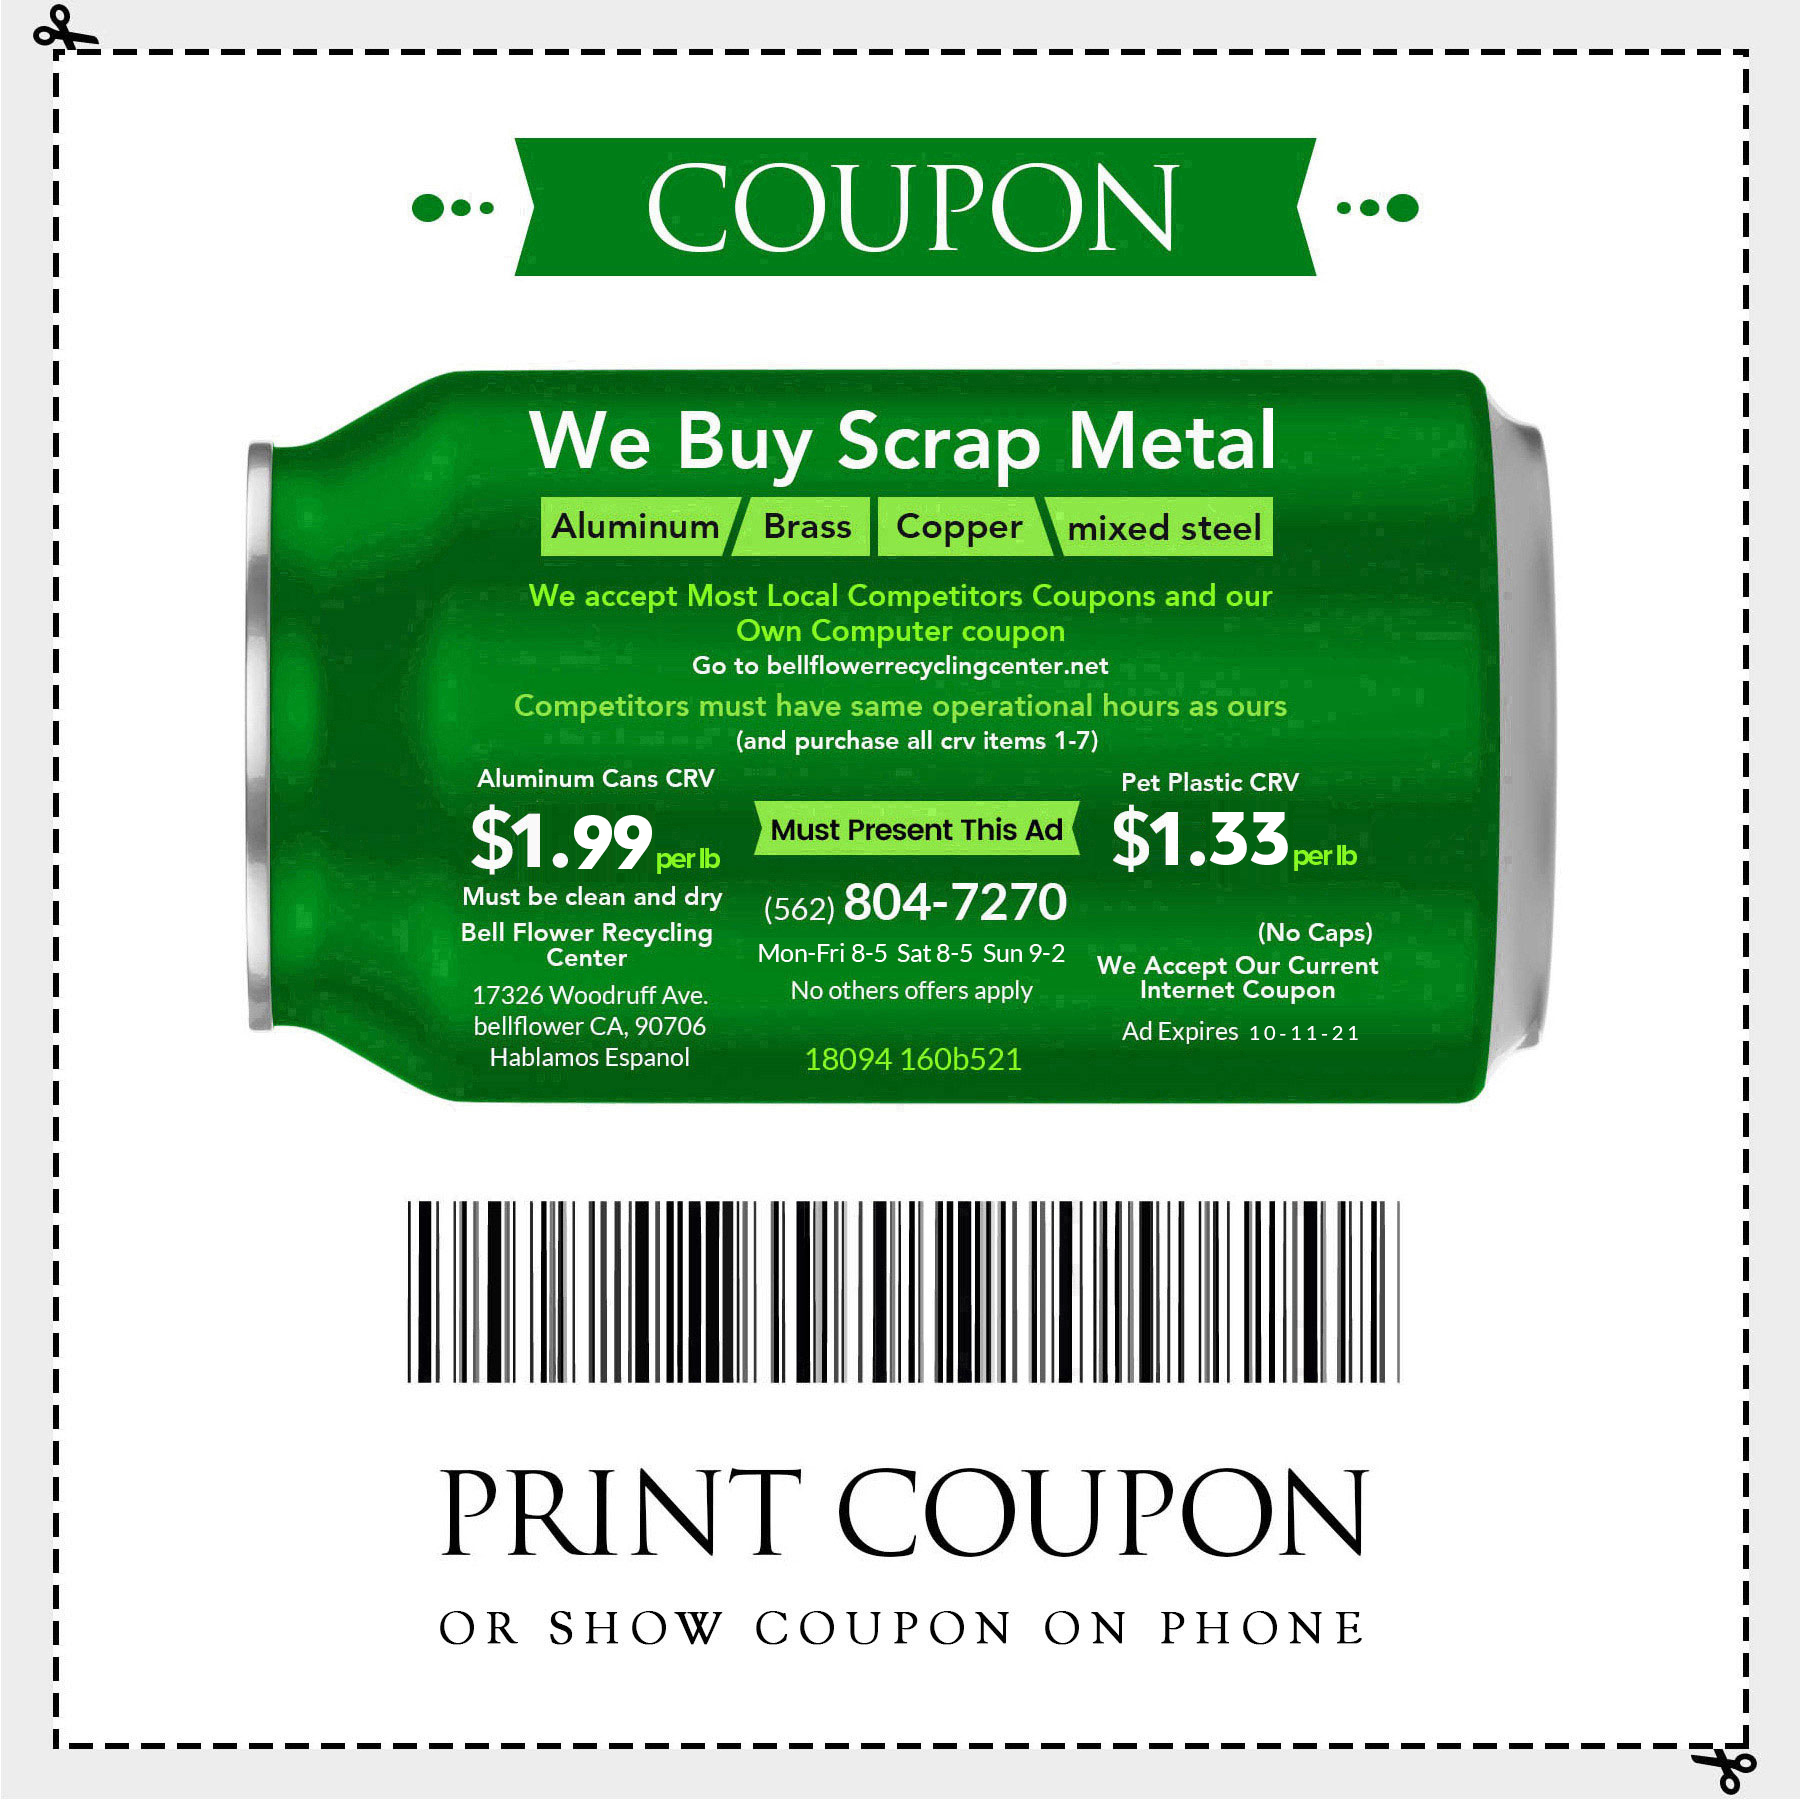 We buy scrap metal Aluminum, Brass, Copper, Mixed steel. We accept most local competitors coupons and our own computer coupon. Competitors must have same operational hours as ours (and purchase all crv items 1-7). One Must present this add. Aluminum Cans CRV $1.99.00 per lb and Pet Plastic CRV $1.33 per lb.